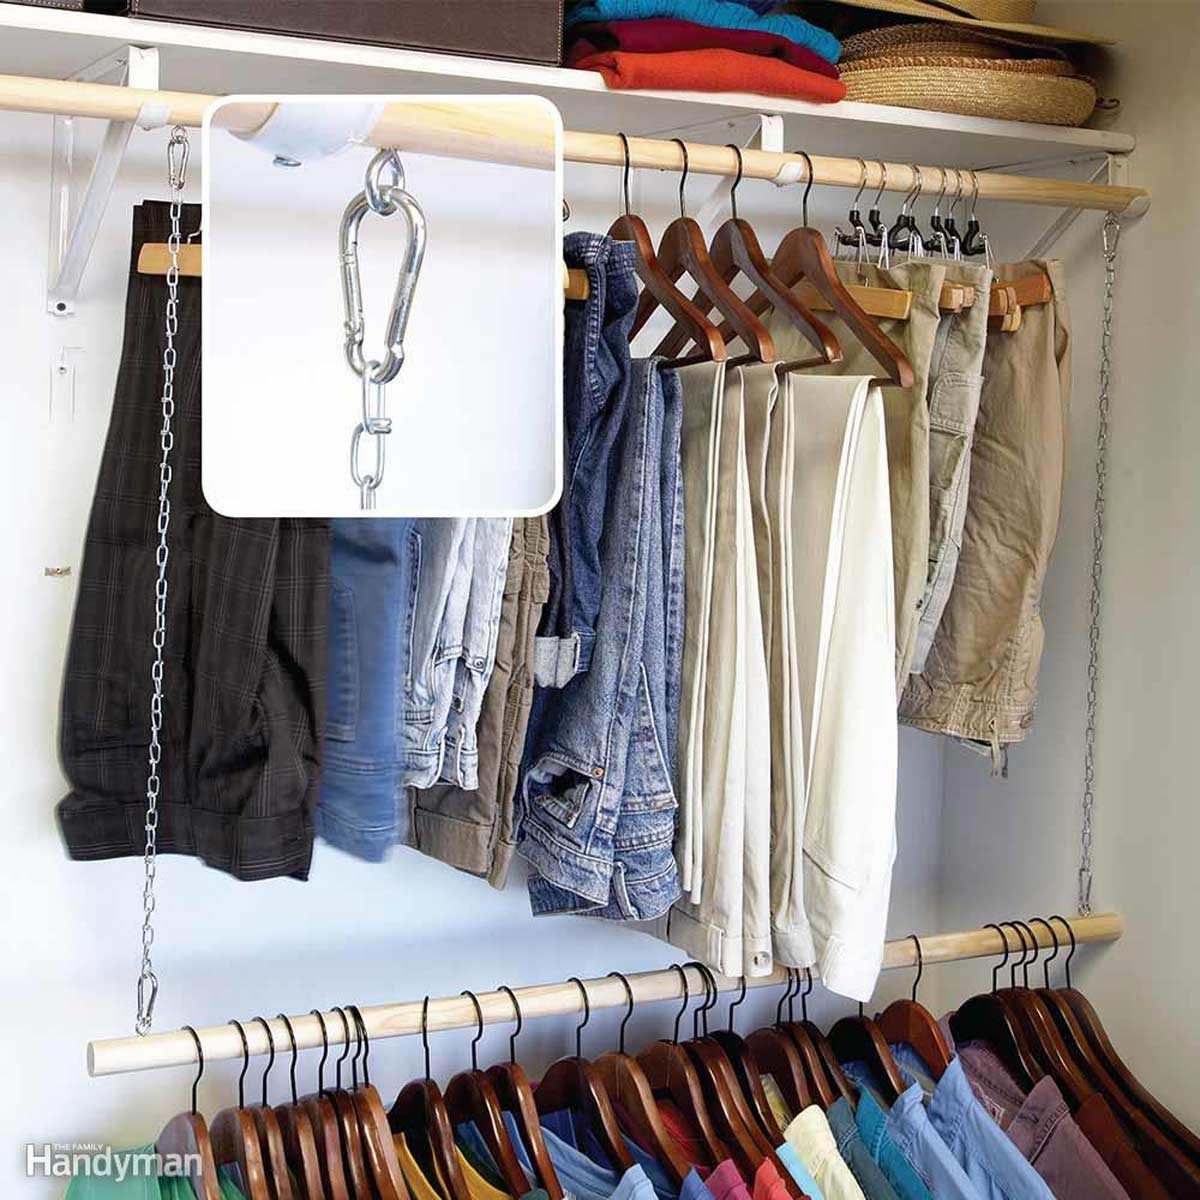 blog home extra hacks closet ideas ultimate storage diy including organization guide the space to tips